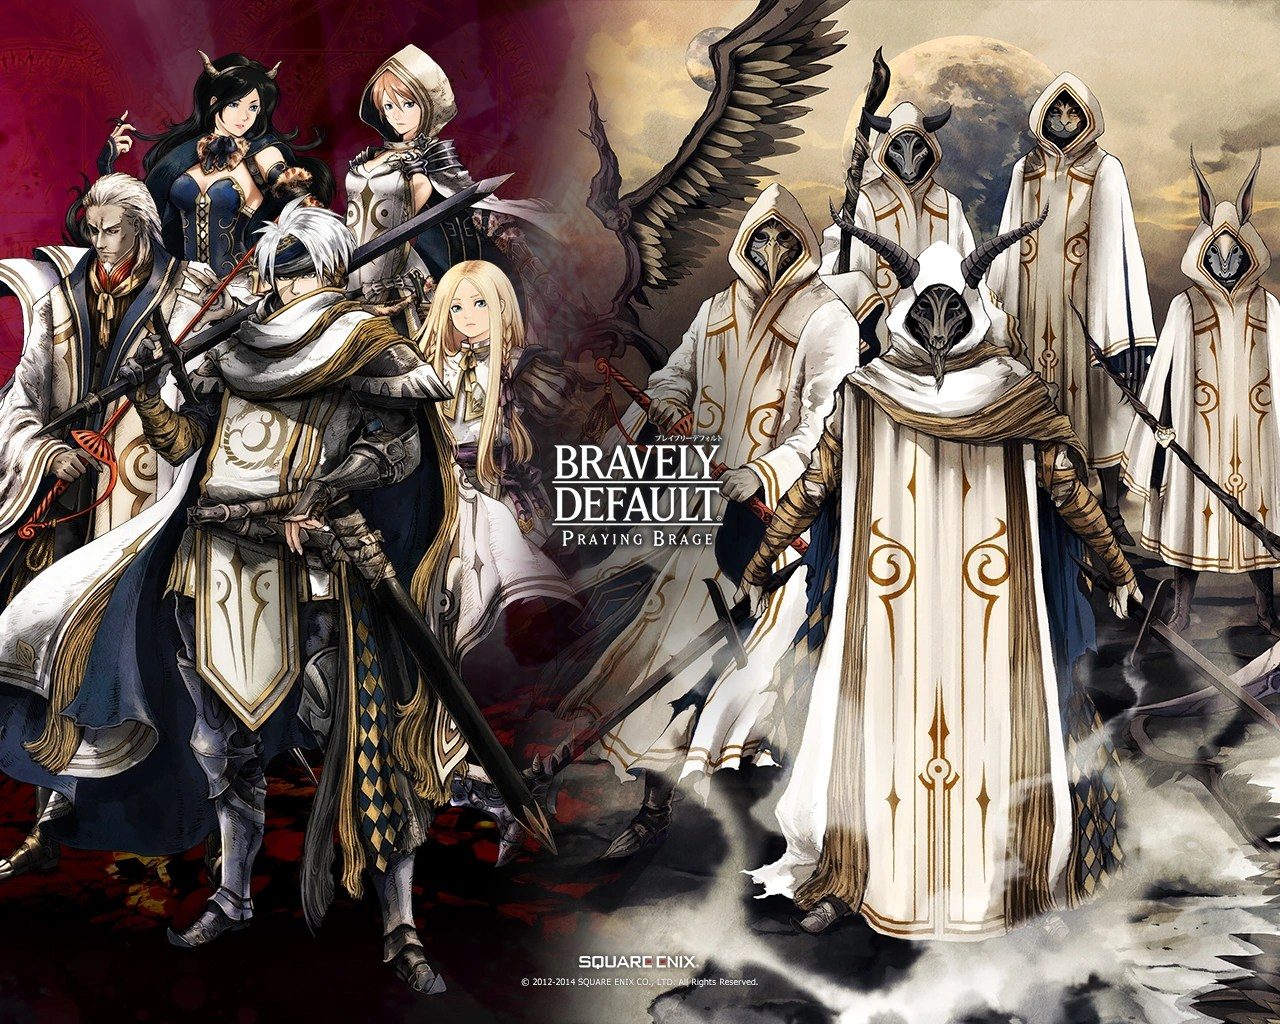 Bravely Default Praying Brage Wallpapers Final Fantasy